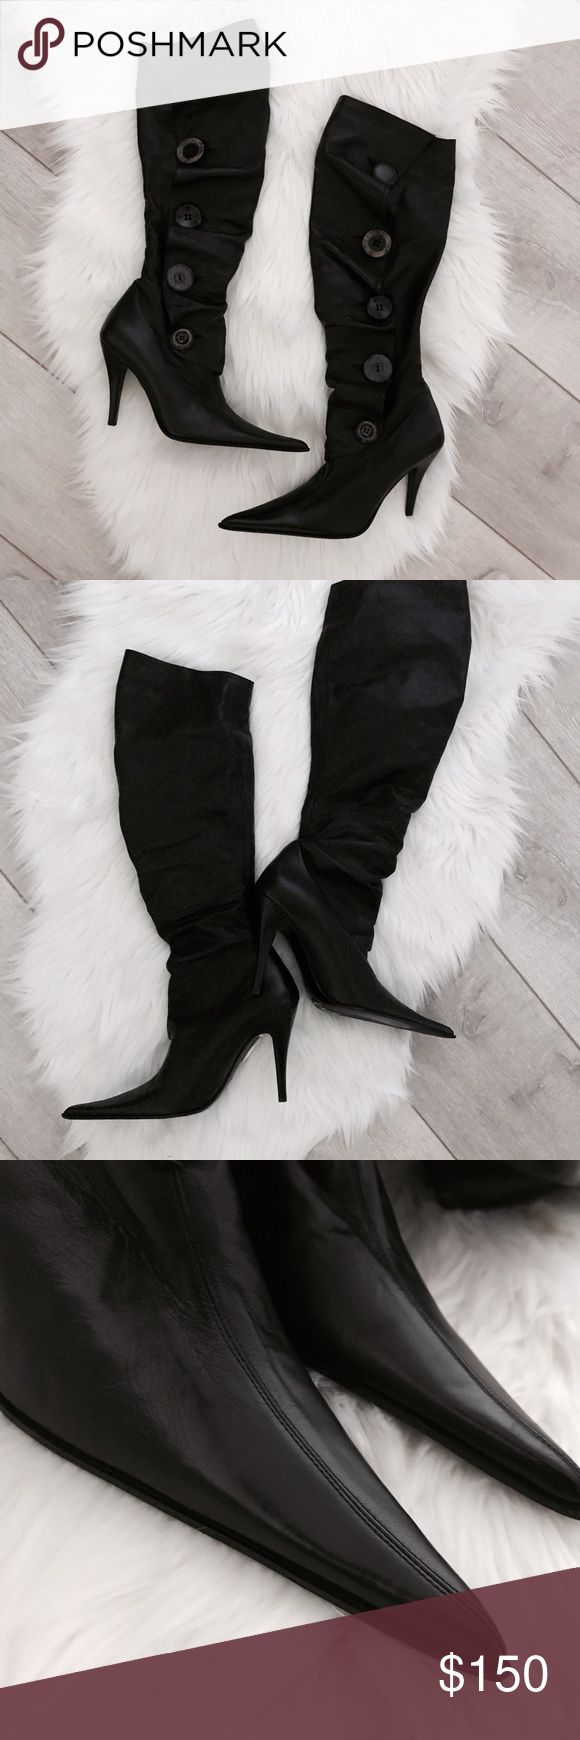 Les Tropeziennes Collection Black Leather Boots Practically new, excellent pre-owned condition, no flaws. Worn once and shows no signs of wear. Tall boots with mismatched buttons and a ruffled design with an amazing soft genuine leather material. Les Tropeziennes Shoes Heeled Boots